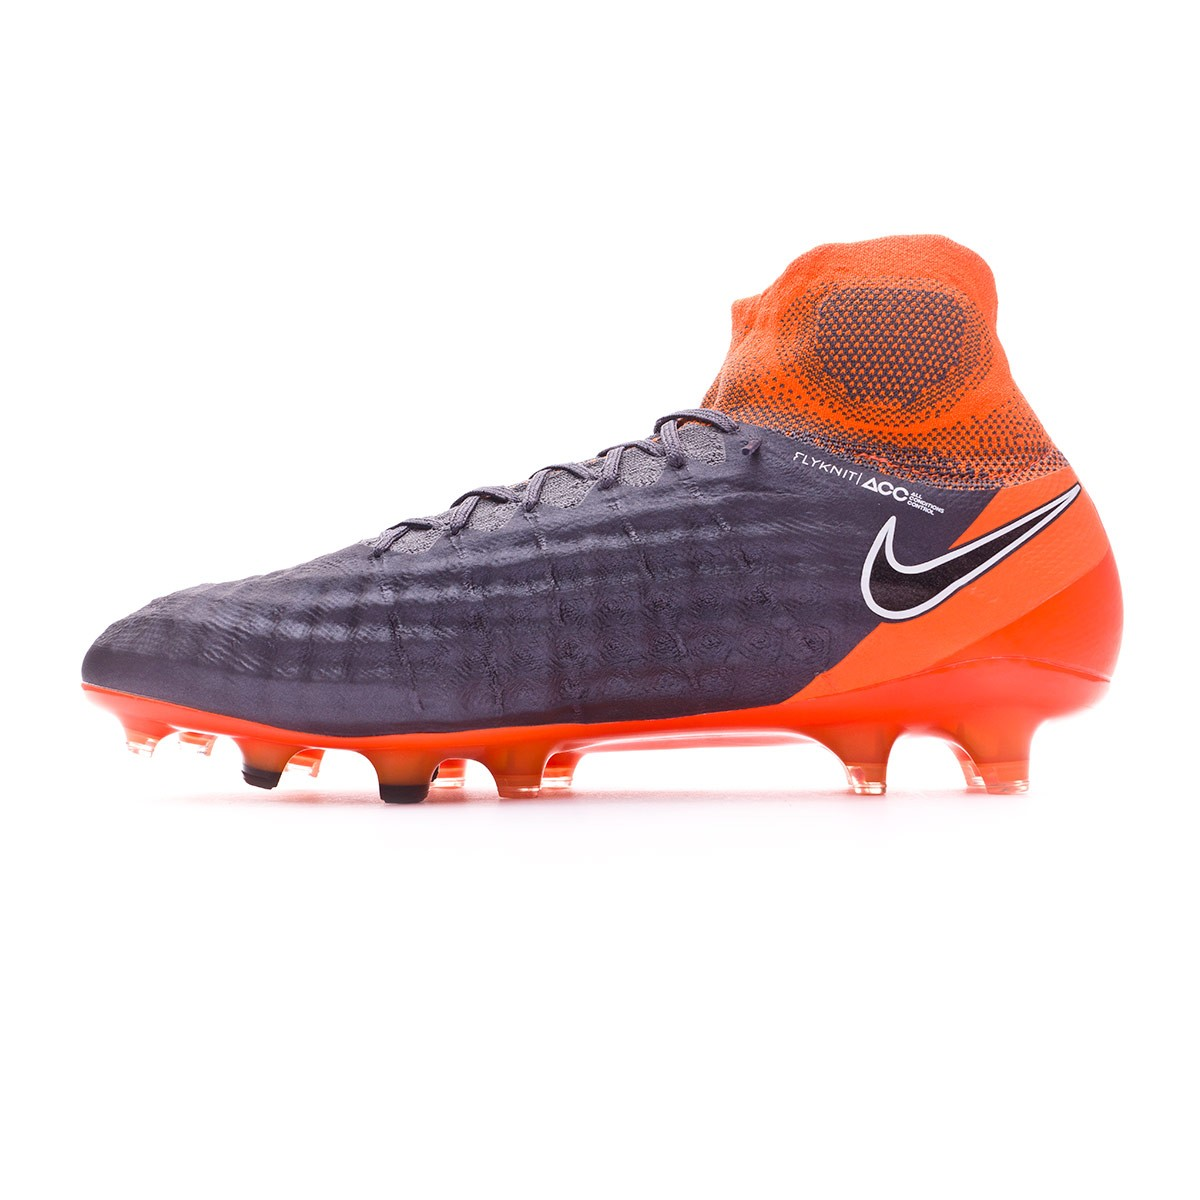 Bota Magista Obra II Elite DF FG Dark grey-Black-Total orange-White